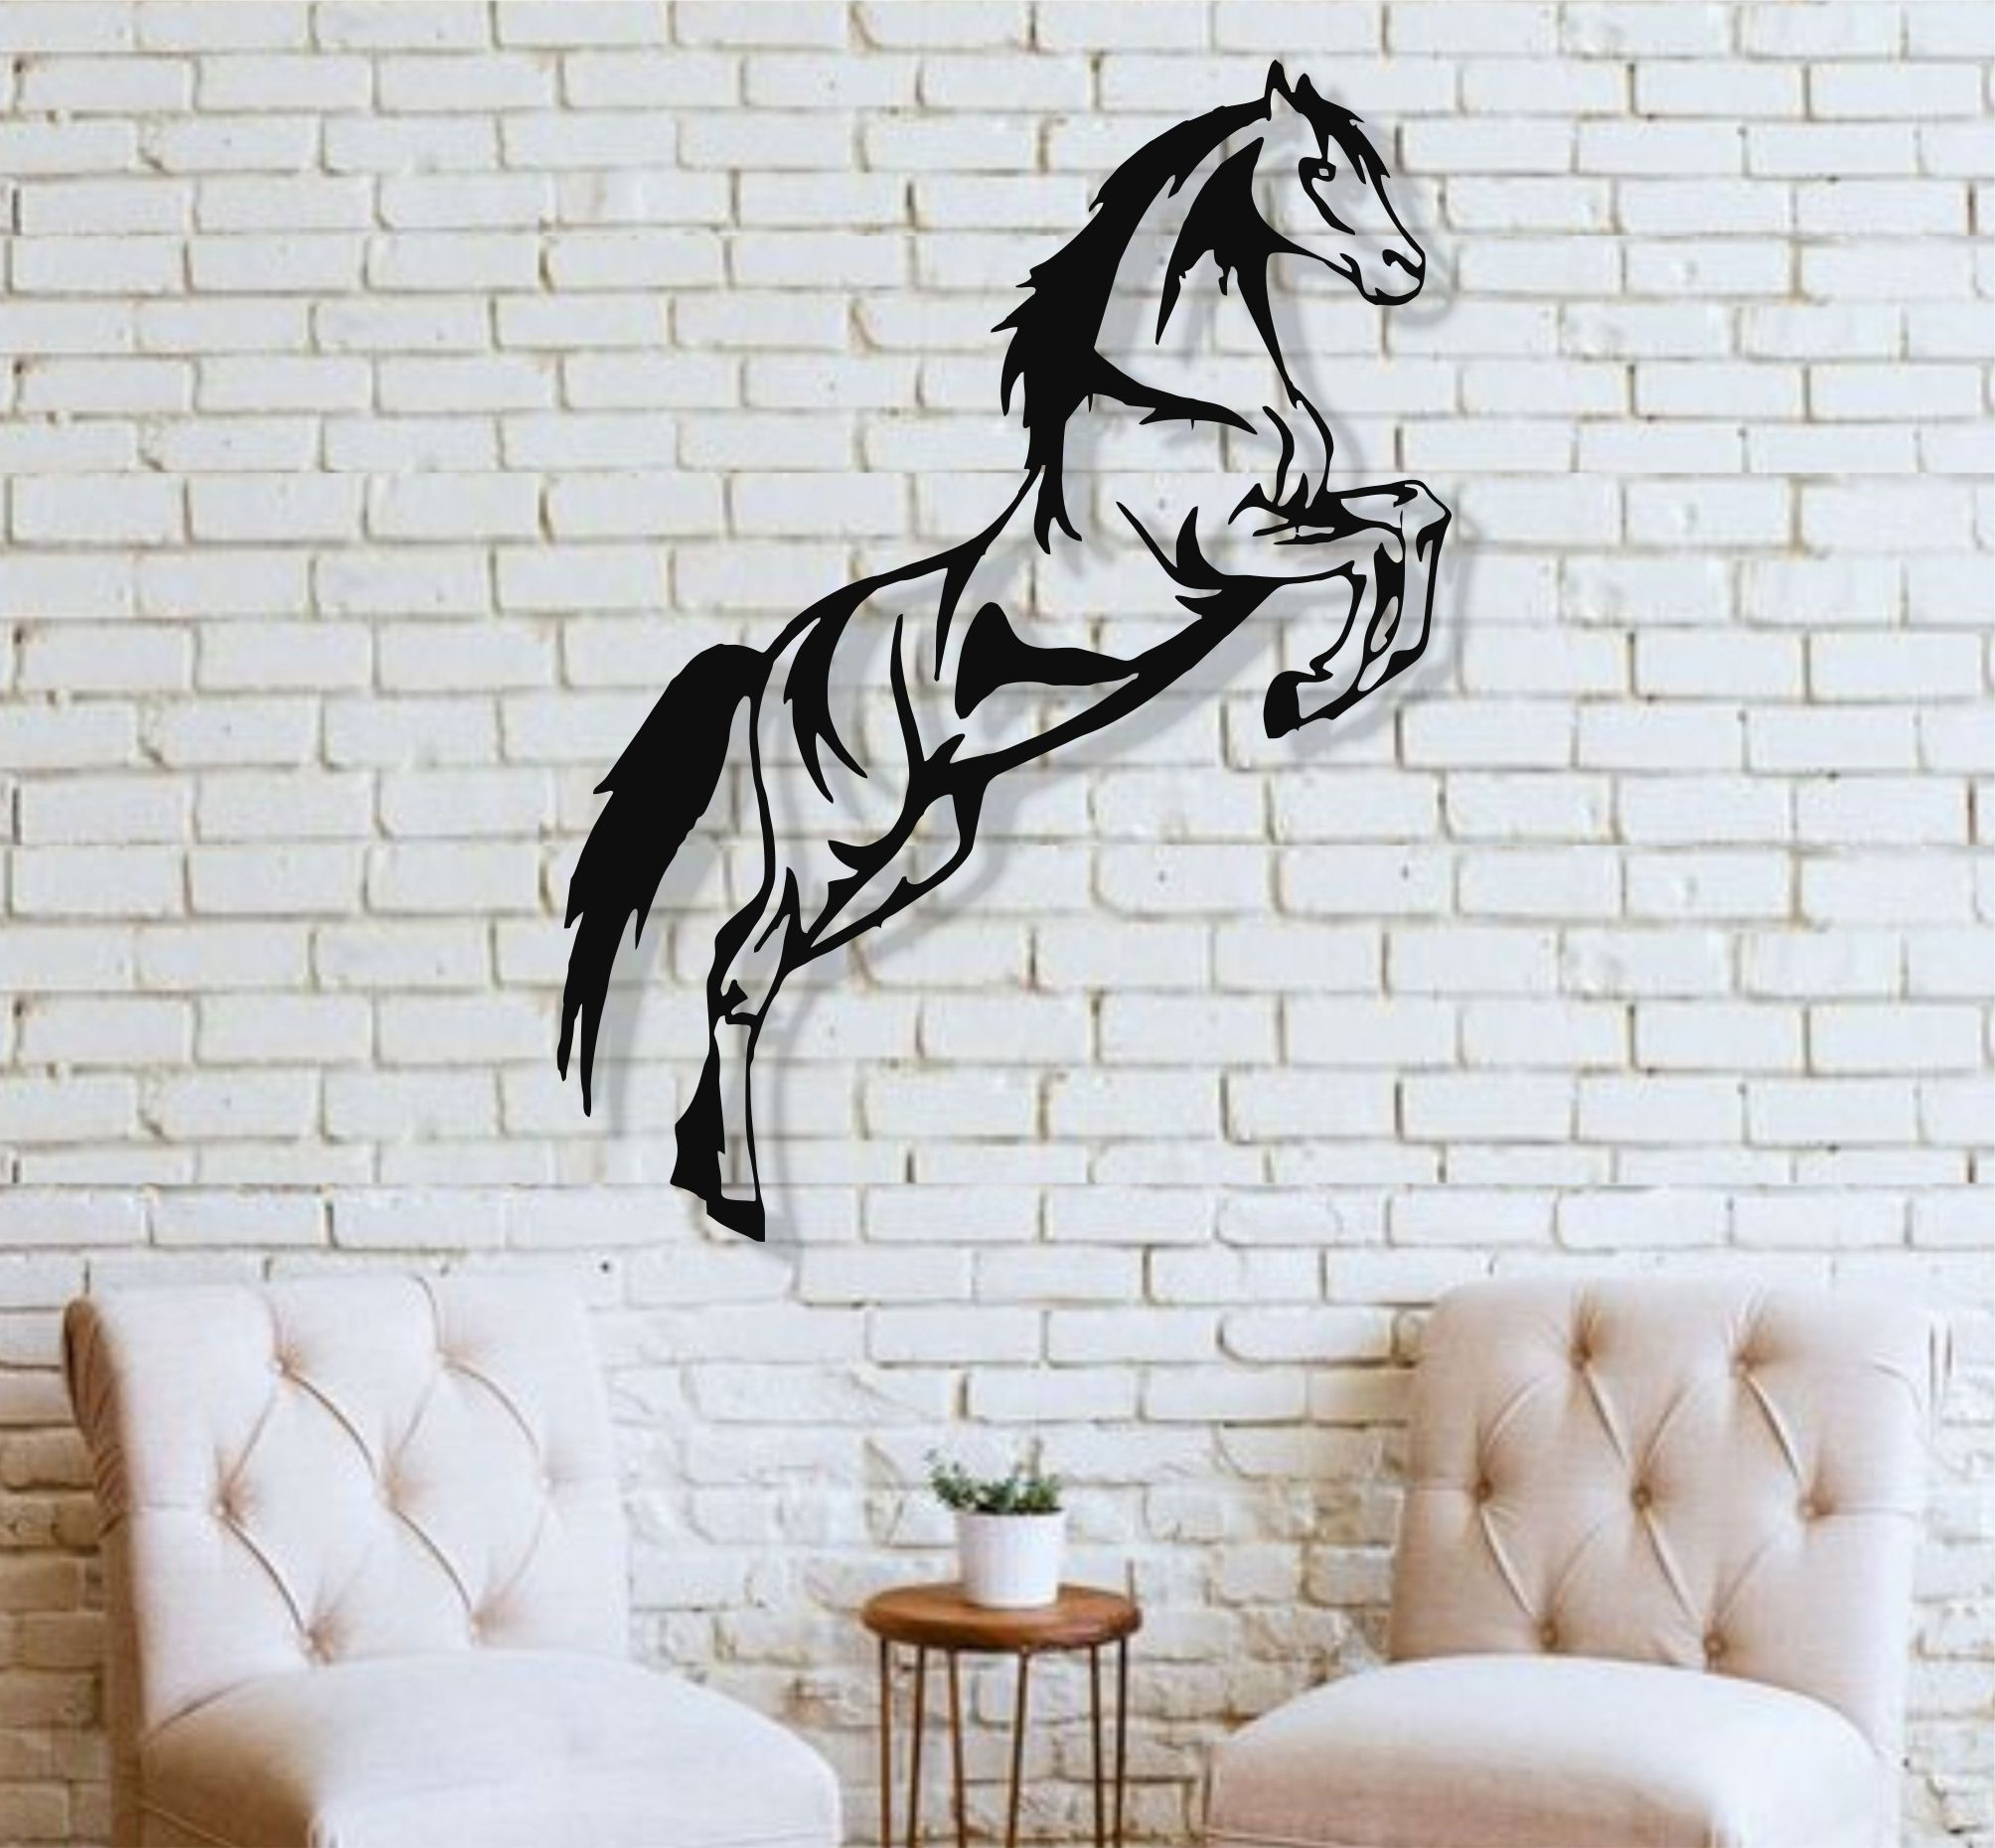 US $10.10 10% OFFMetal Wall Art, Metal Horse, Metal Wall Decor, Interior  Decoration, Living Room Decor, Metal Sign, Farm Decor, Metal Horse